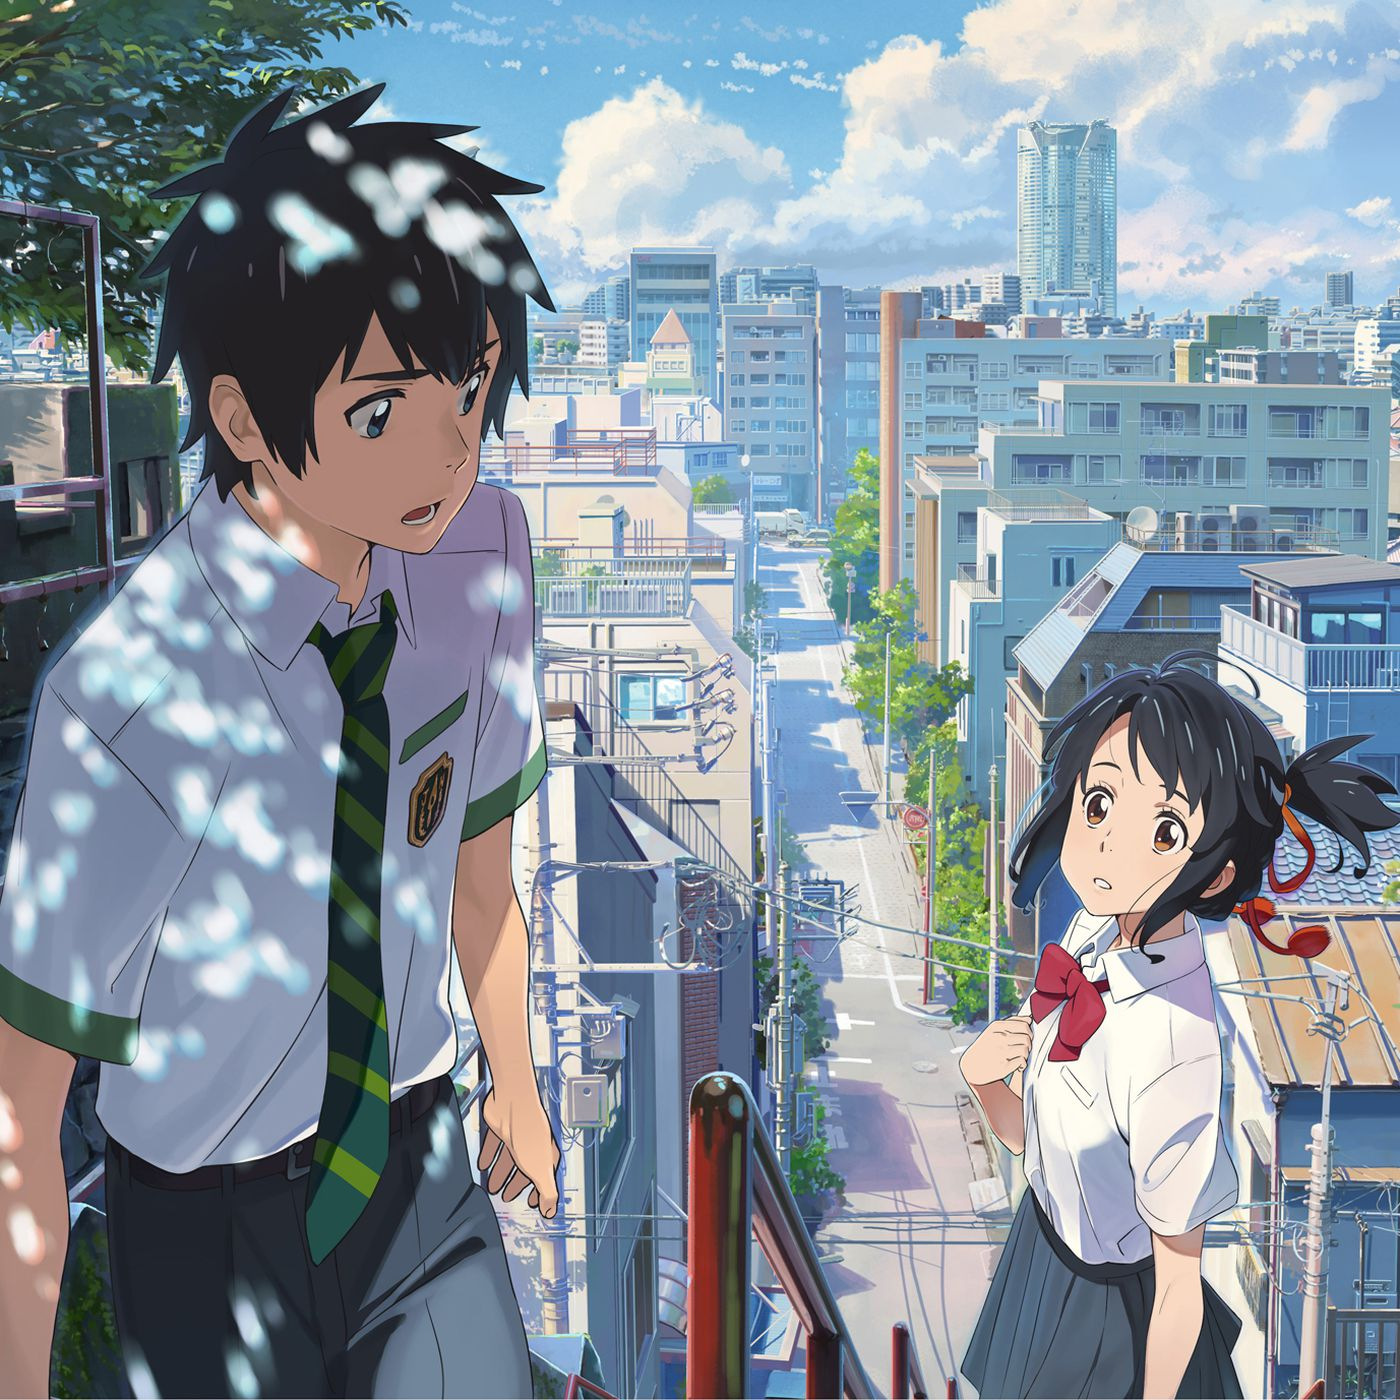 Your Name S Approach To Love Manages To Fix What Most Other Movies Get Wrong Polygon